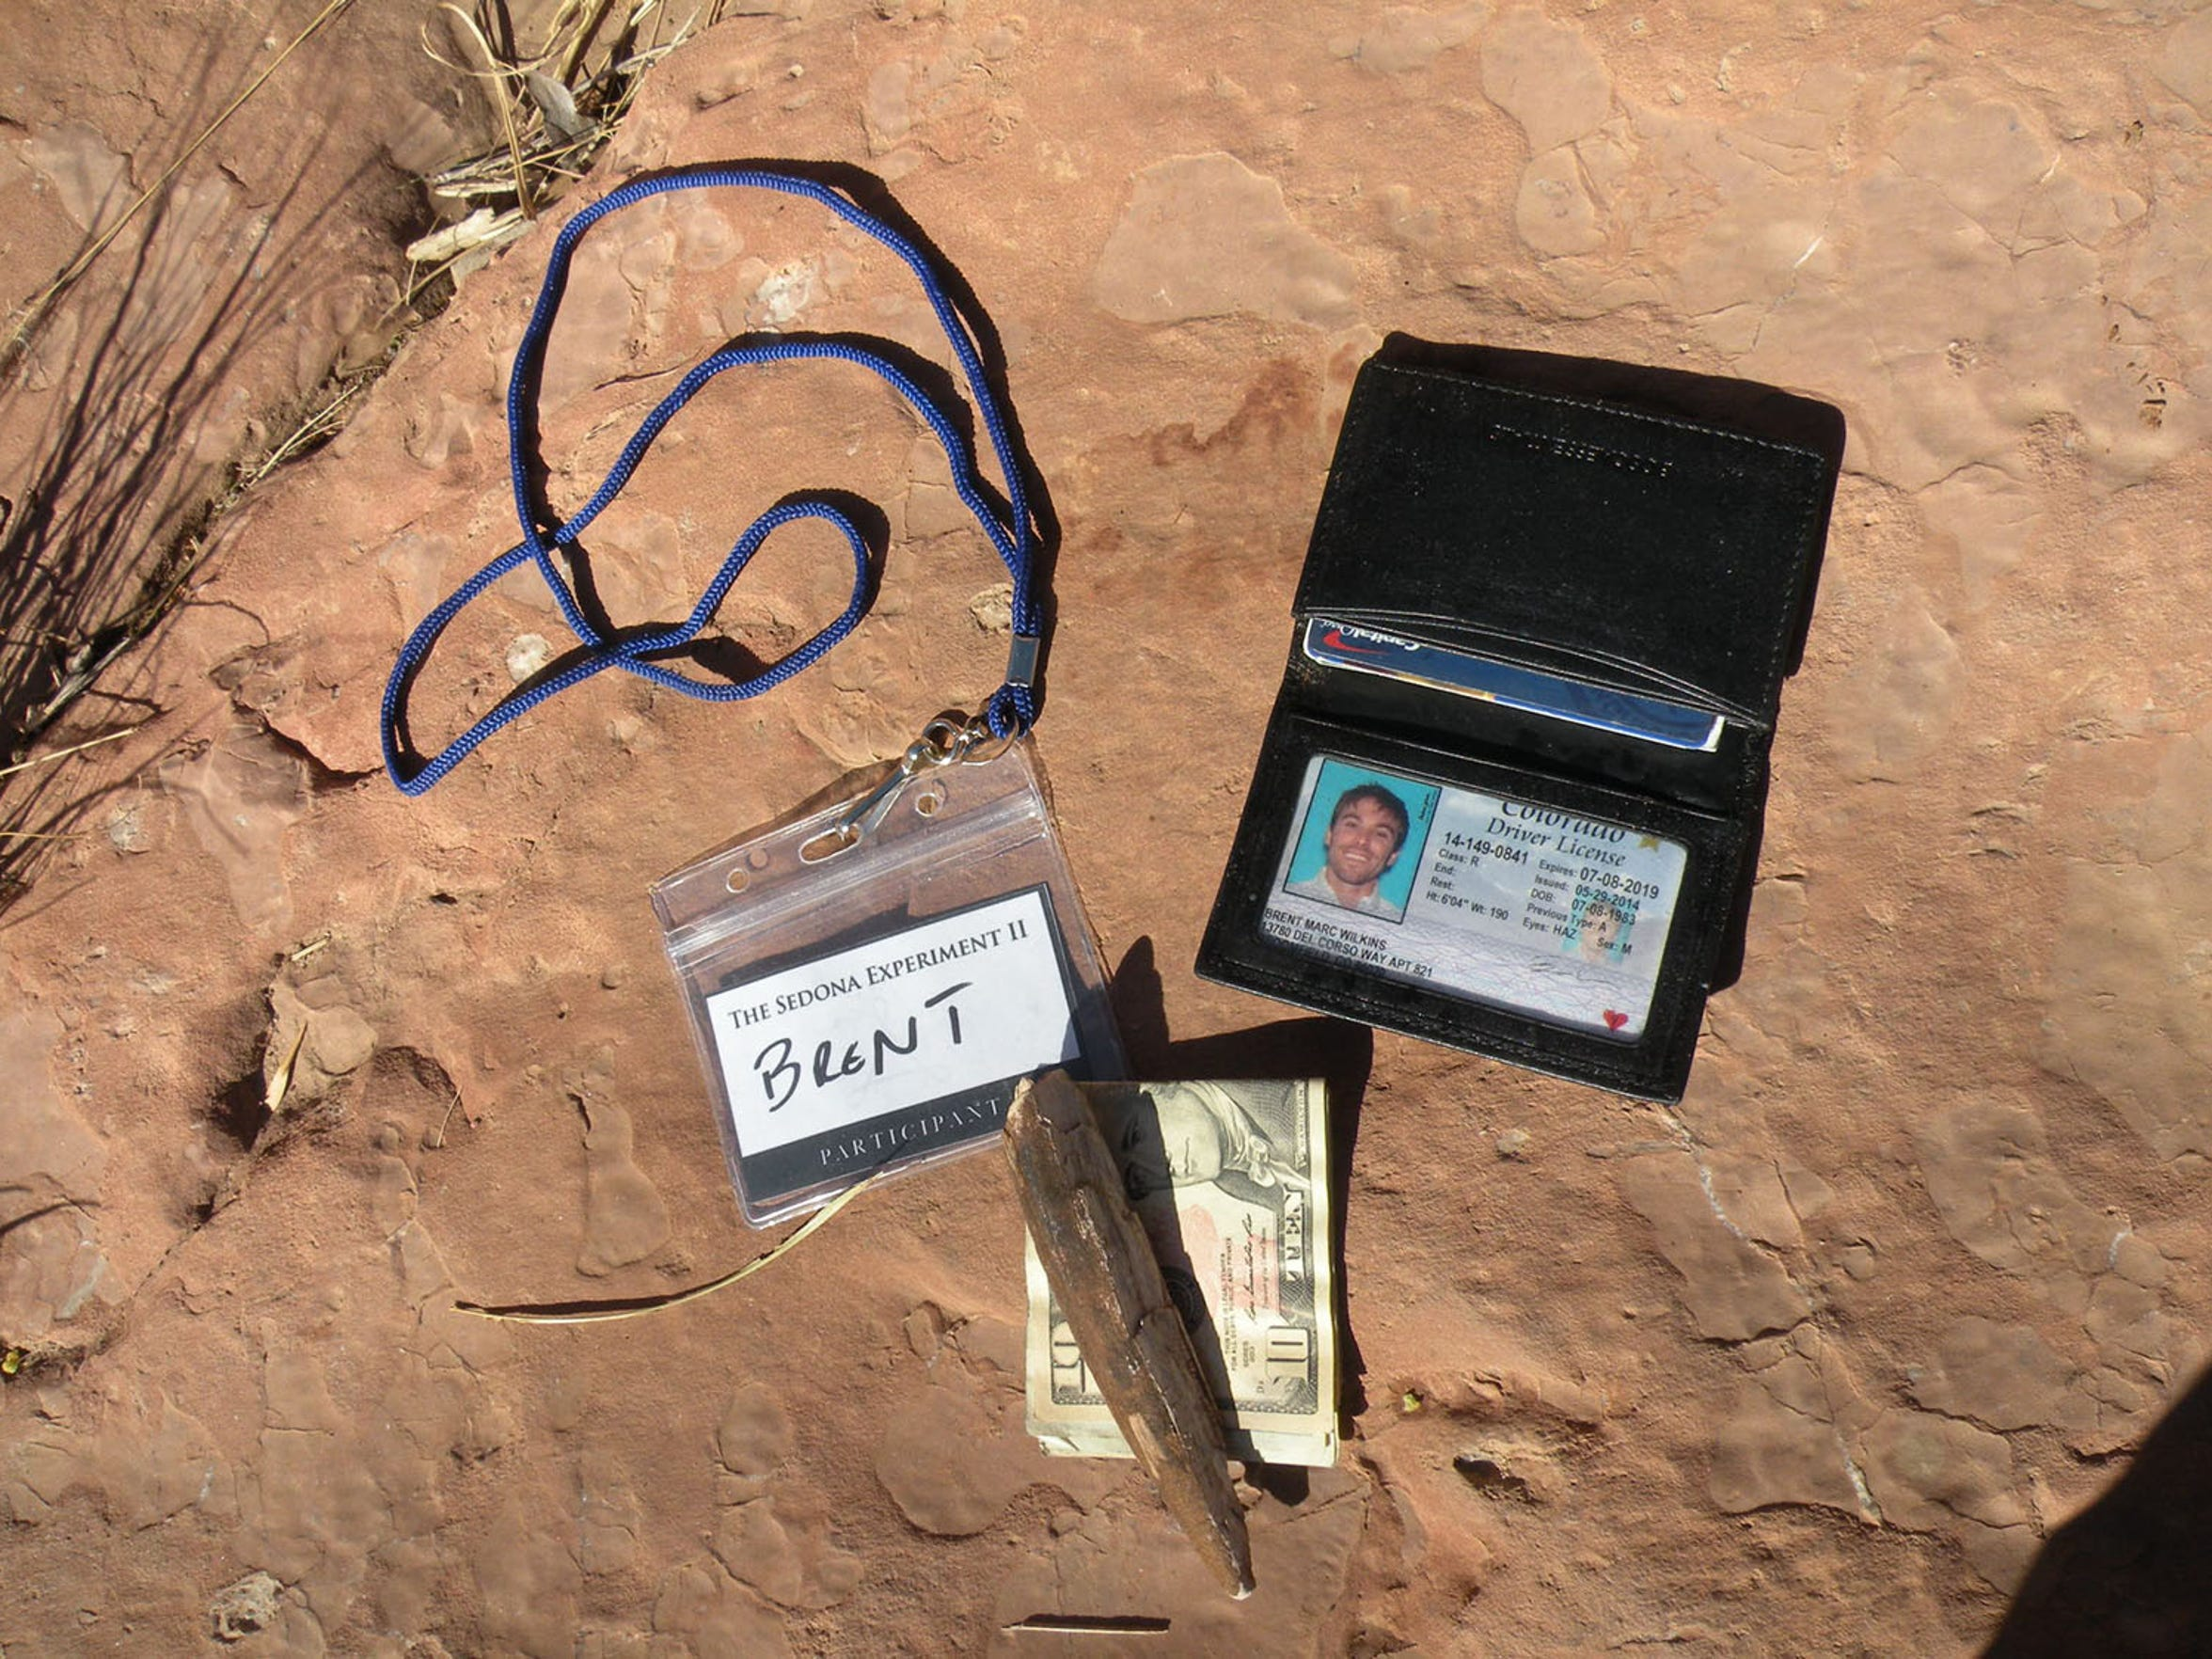 Sedona police emptied Brent's pockets, pulling out